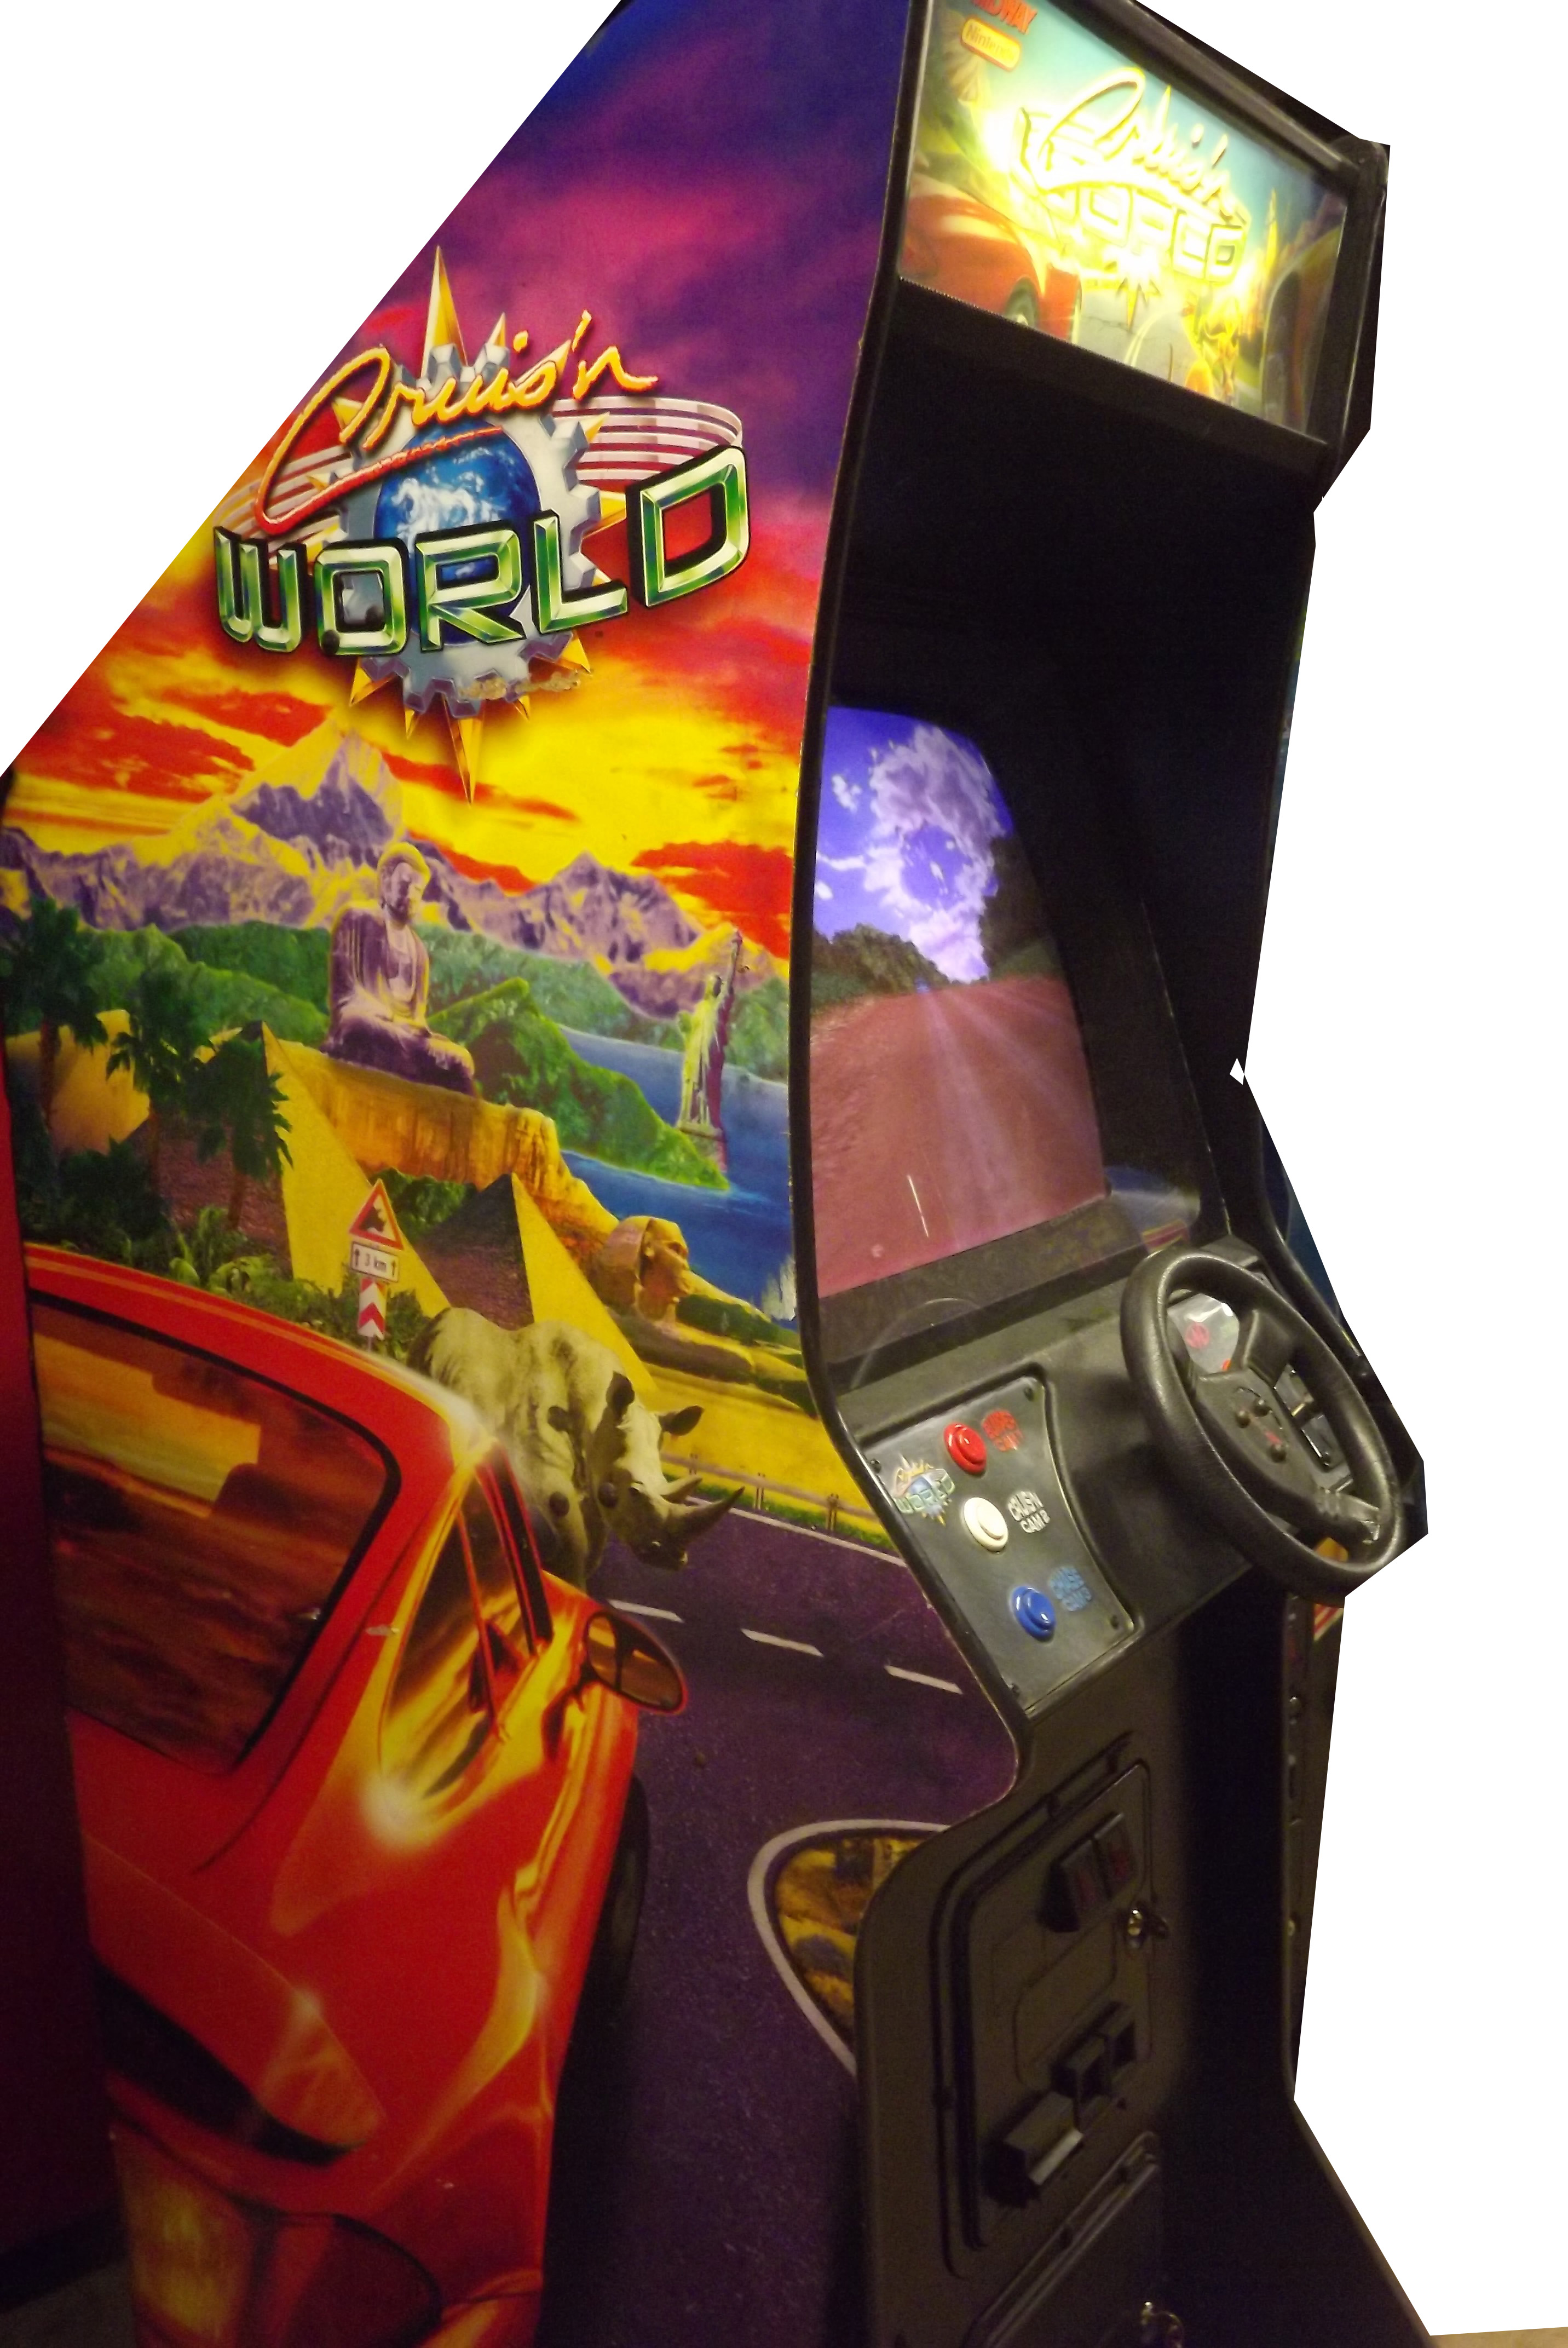 Cruis N World Upright Arcade Machine Game For Sale By